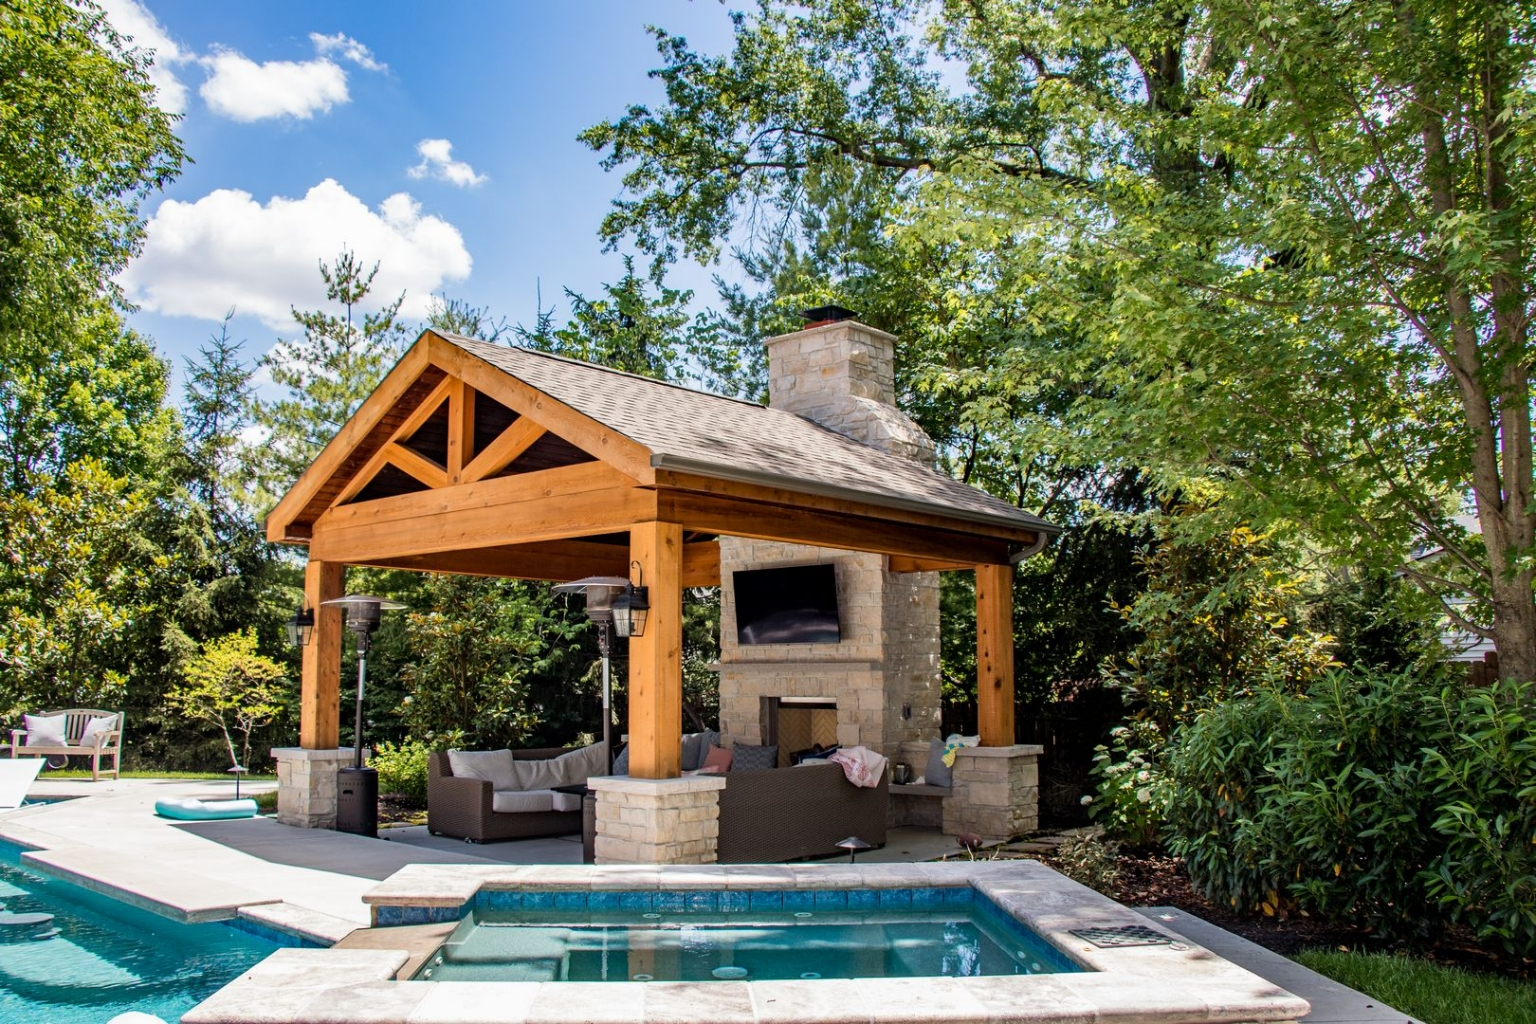 beautiful outdoor room with fireplace